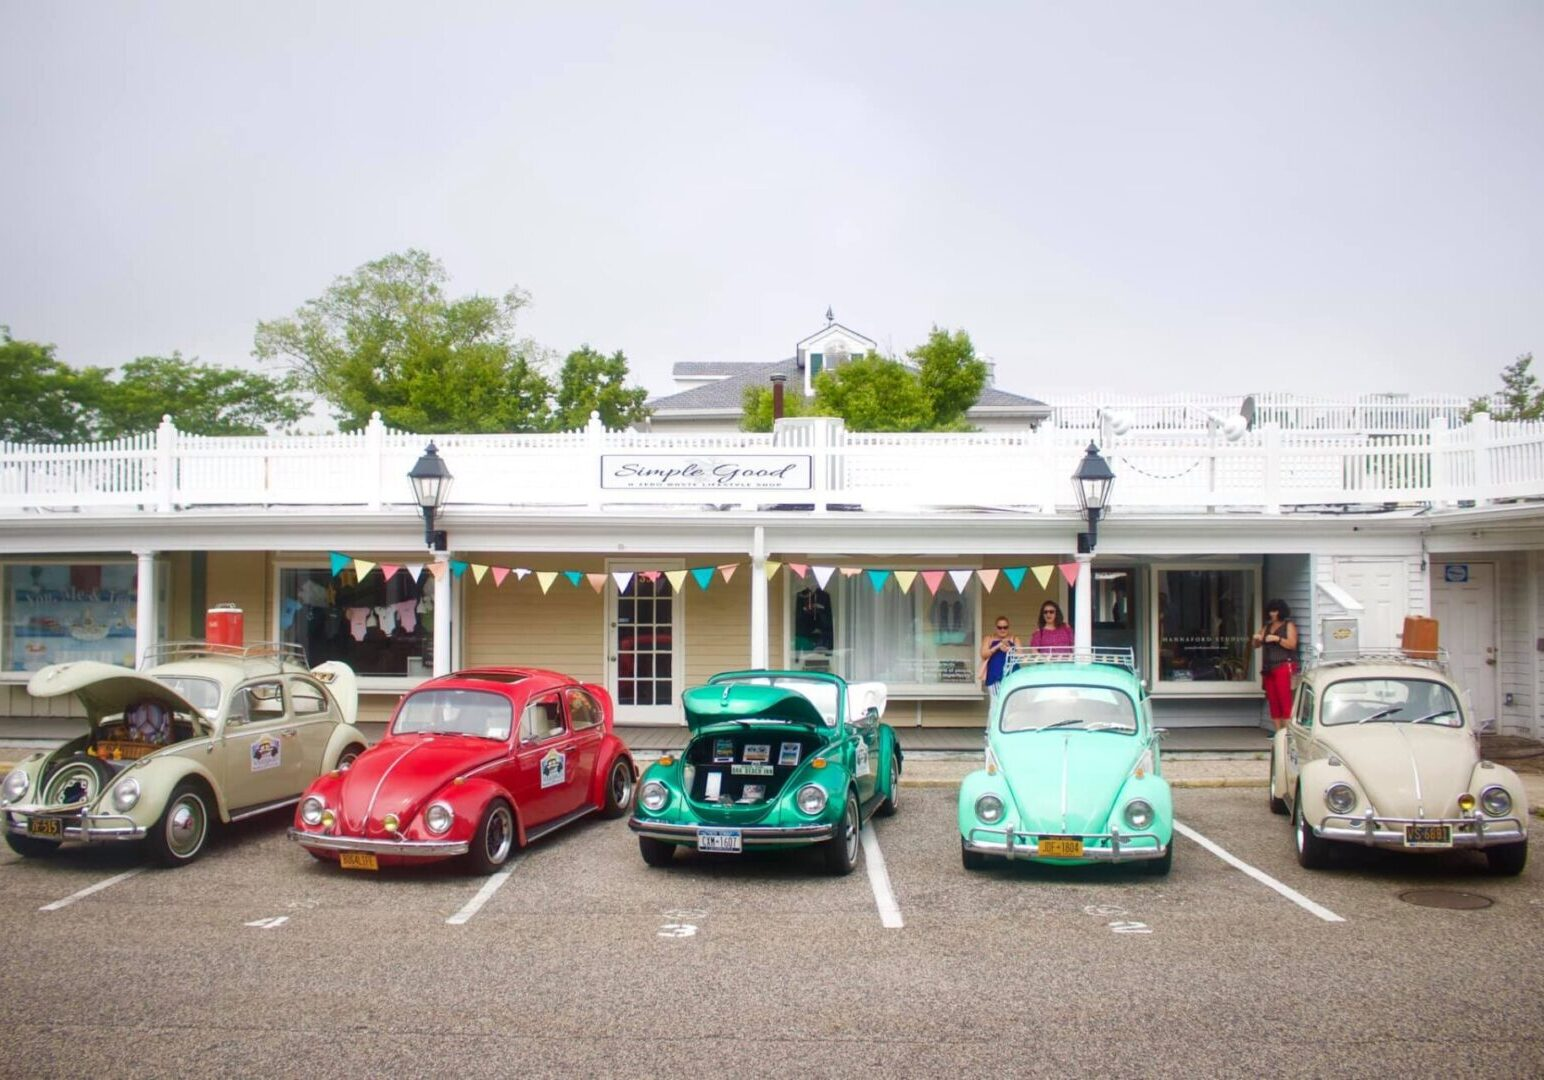 VW bug lined up